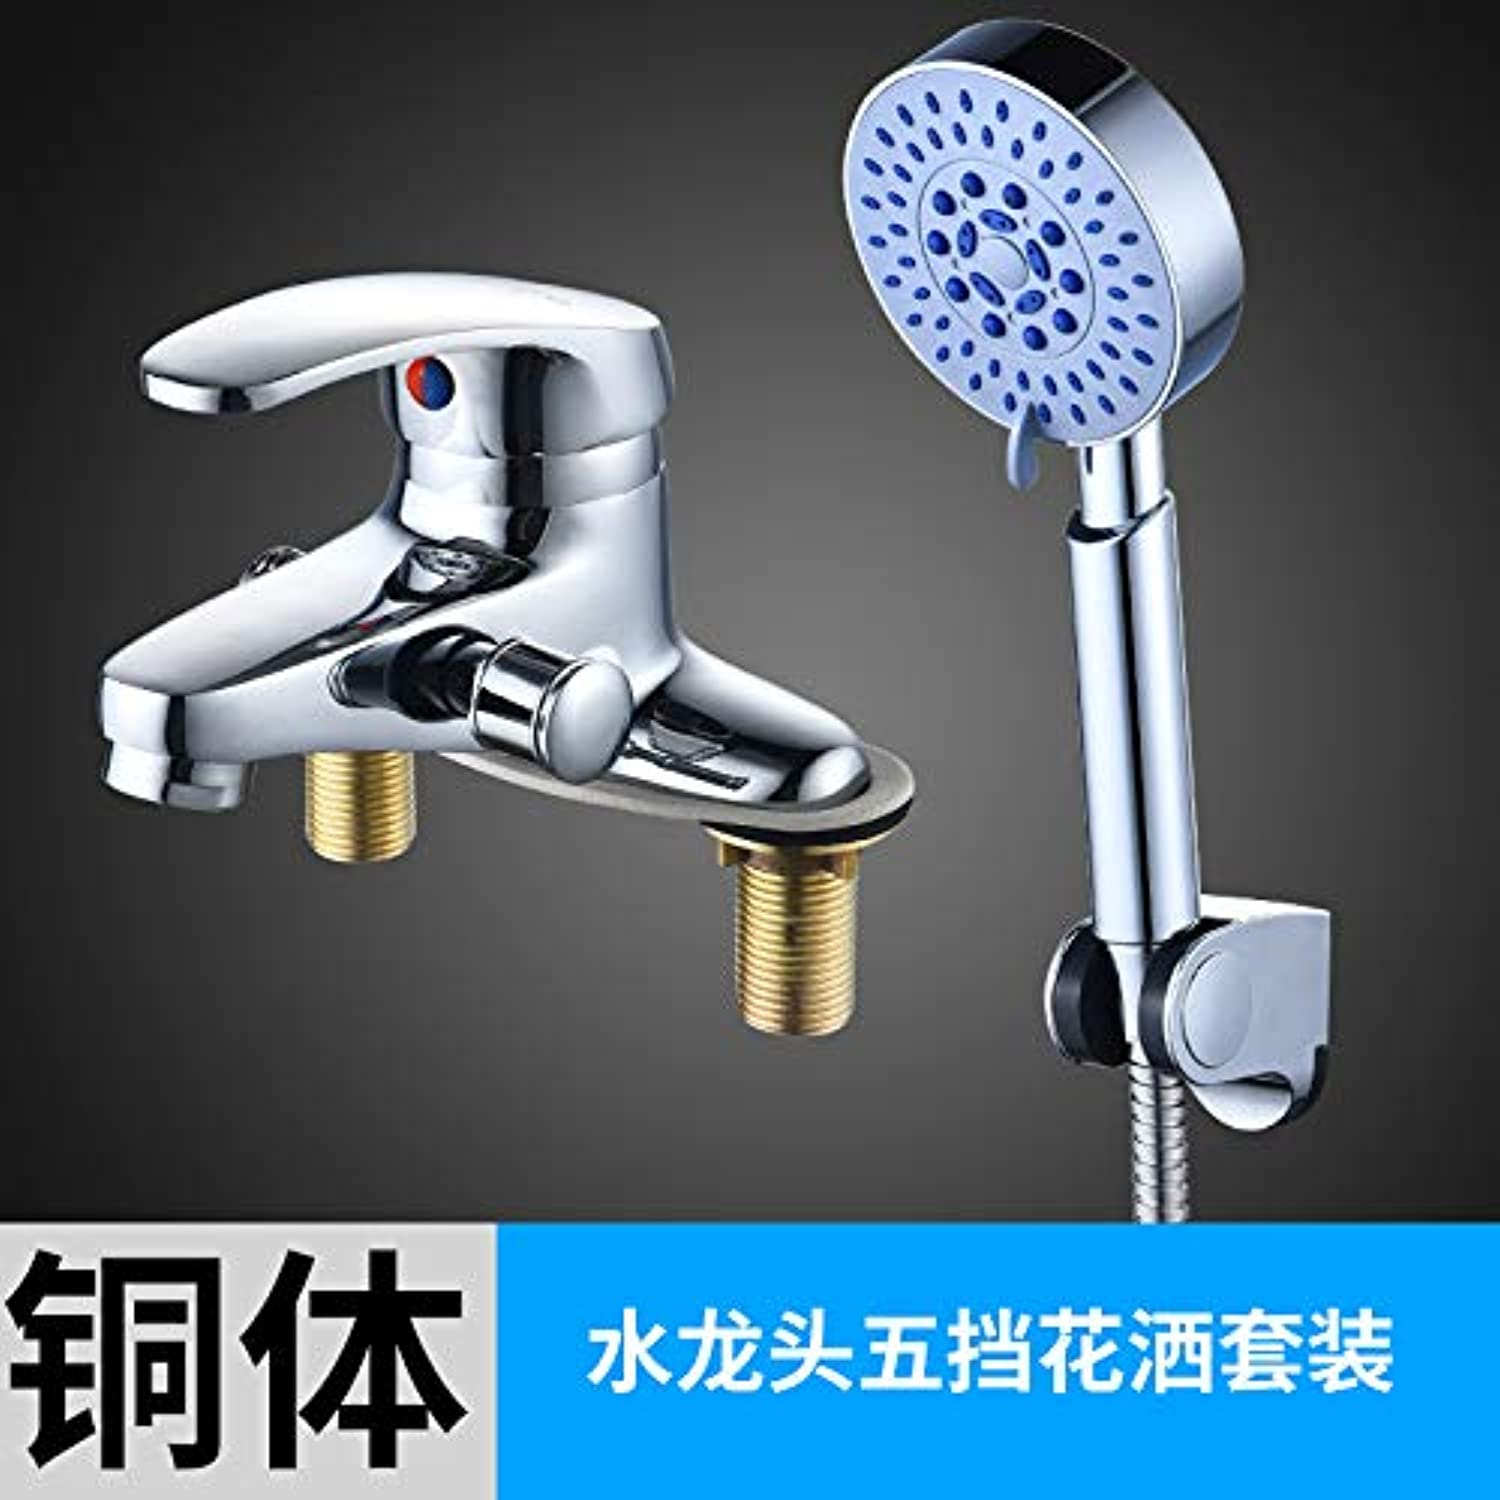 redOOY Mixing valve faucet double hole with shower bath set mixing valve wash basin dual use shower faucet, copper body faucet five block shower set G